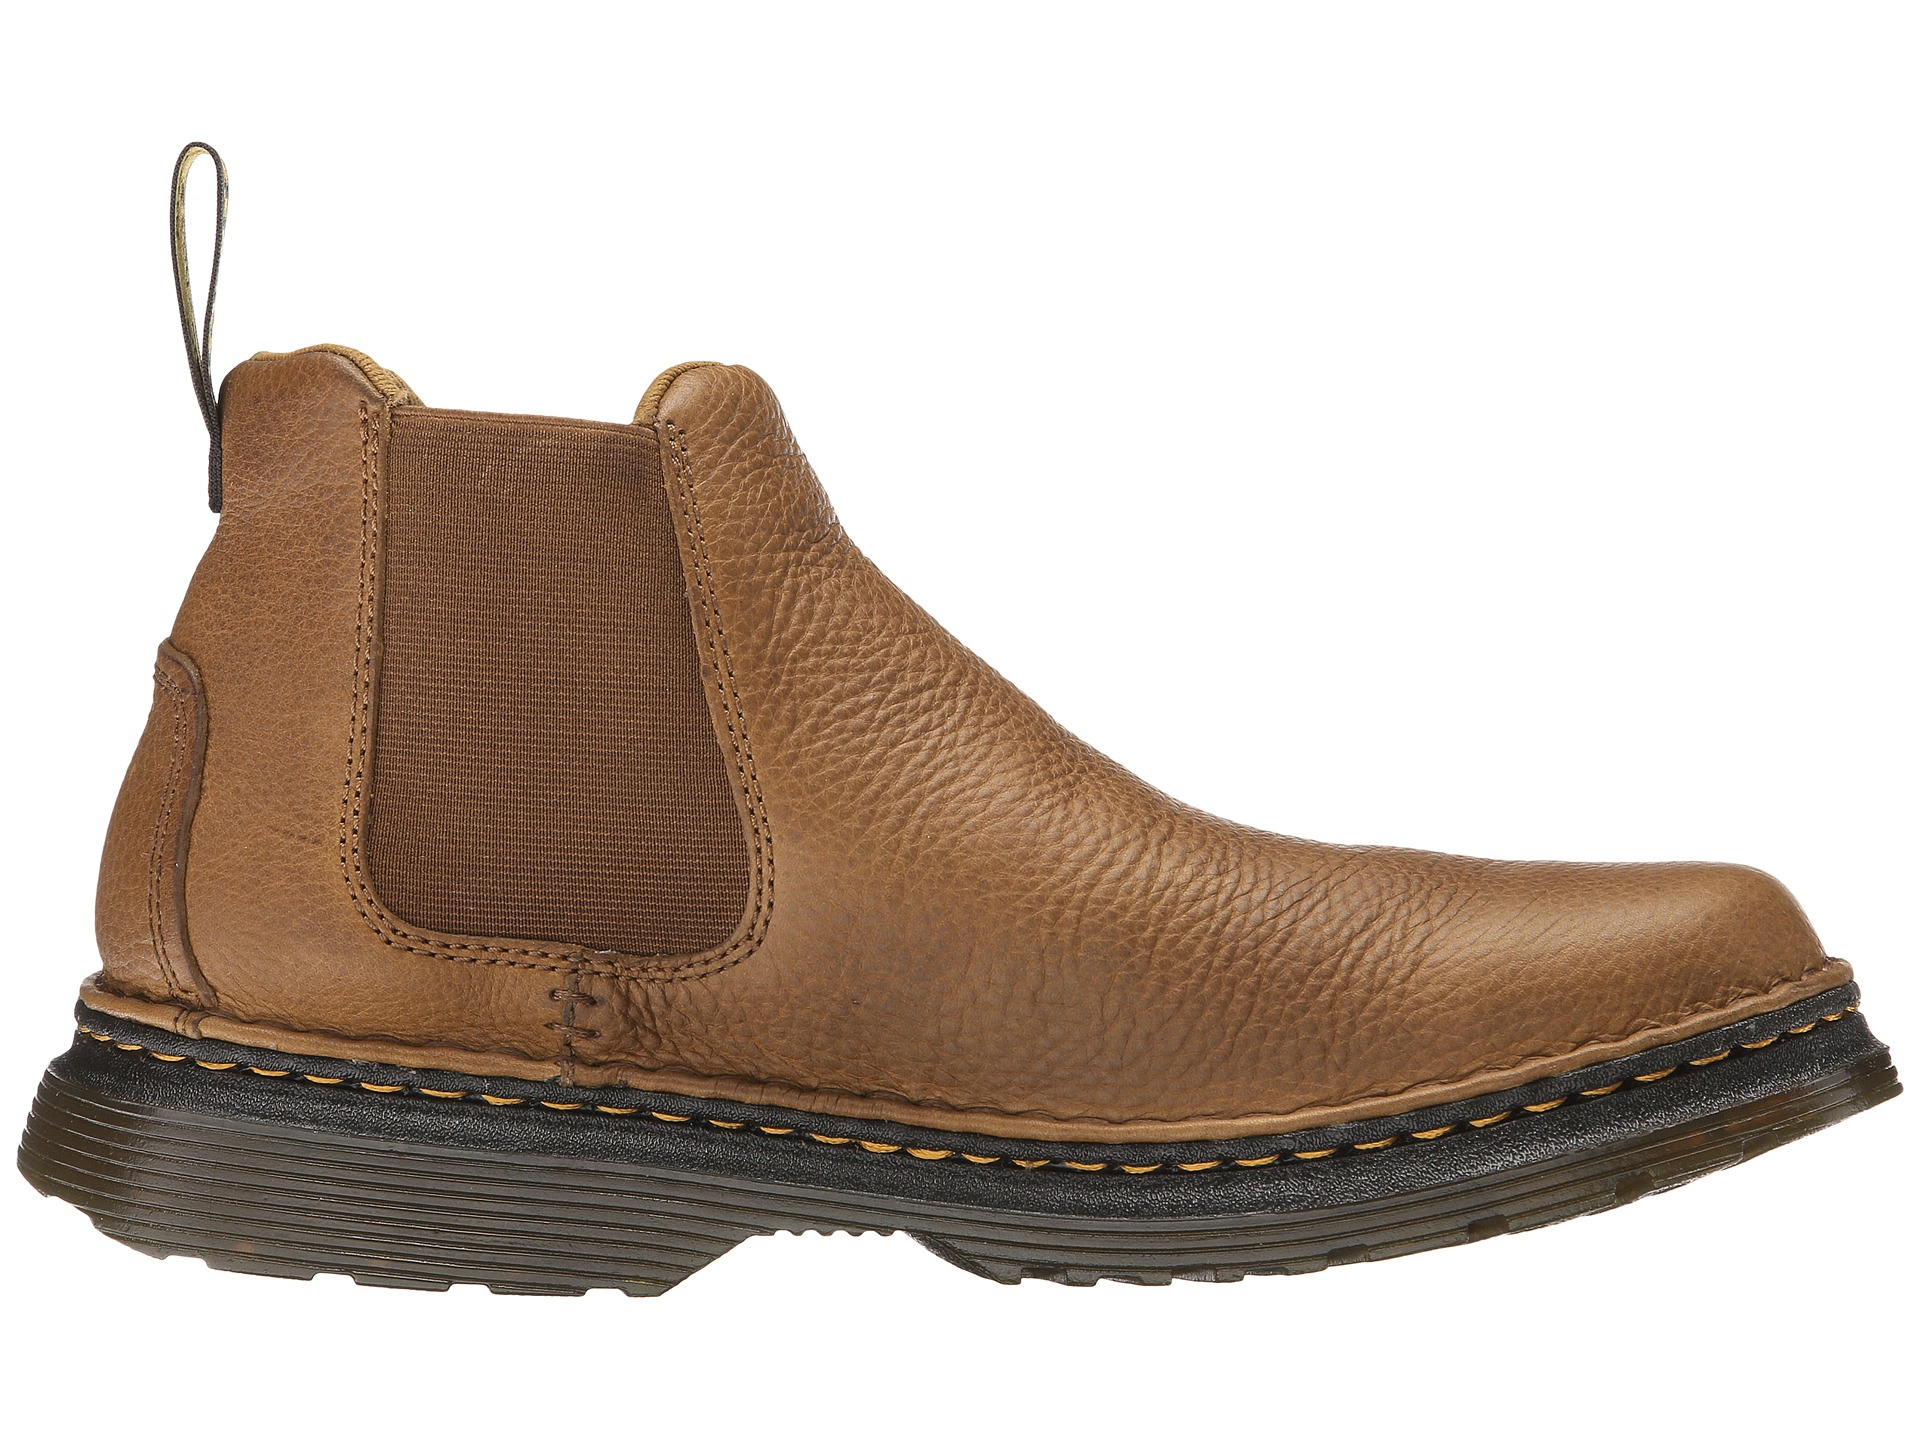 dr martens oakford chelsea boot in brown for men tan biscuit grizzly hi suede wp lyst. Black Bedroom Furniture Sets. Home Design Ideas